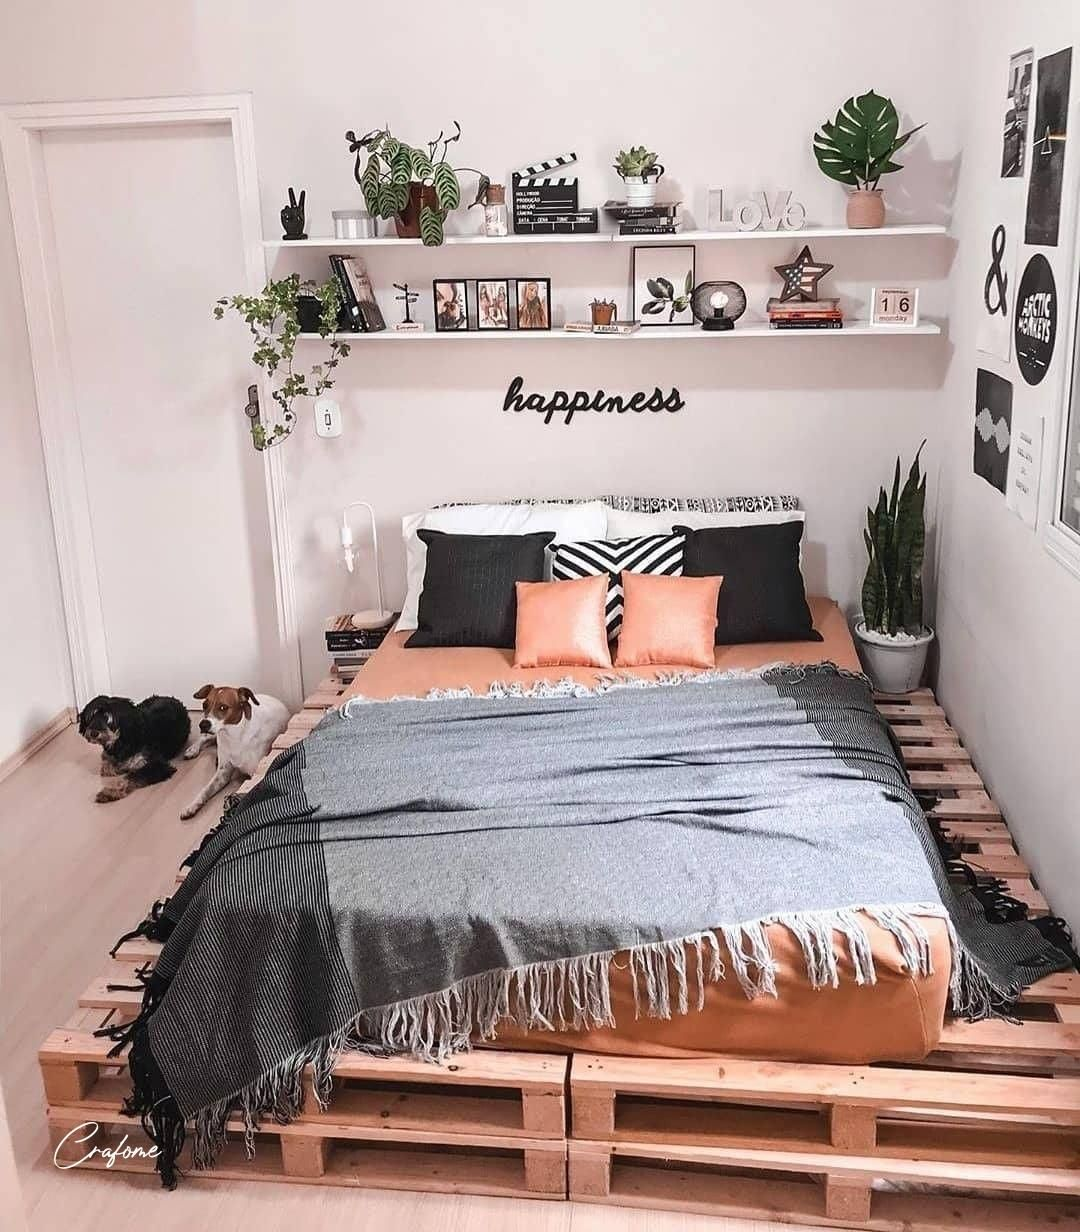 6 Ideas for Turning Old Pallets into Dorm Decorations